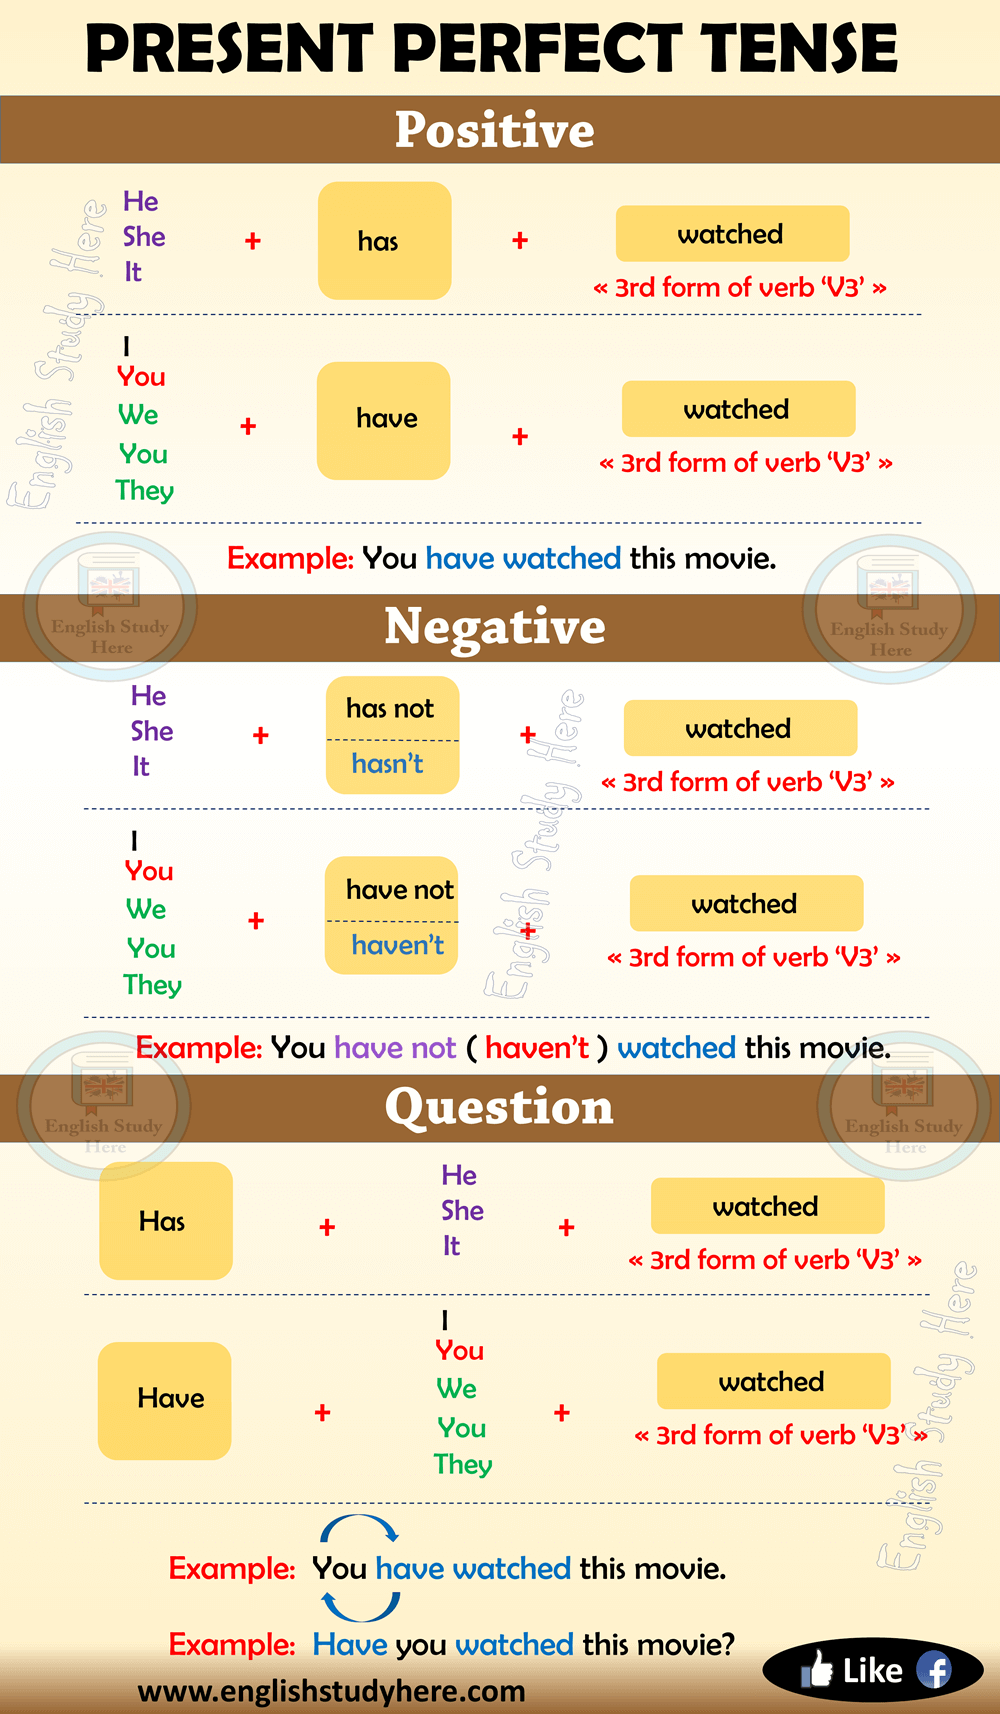 Grammar Rules For Present Perfect Tense Archives English Study Here